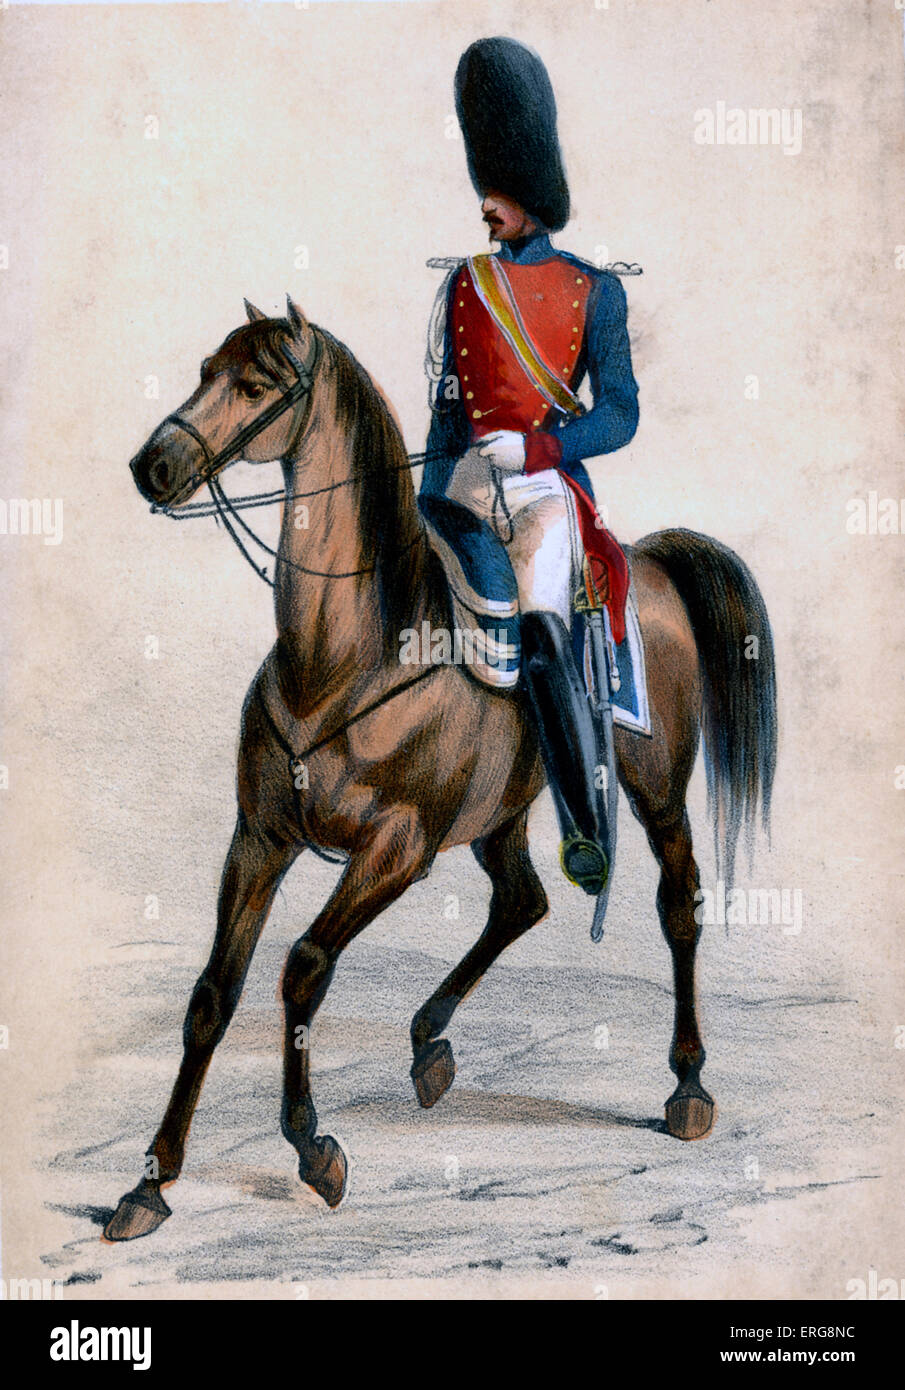 Gendarme: a  member of a gendarmerie, 19th century French police force, incorporated in the French Army. Under the - Stock Image